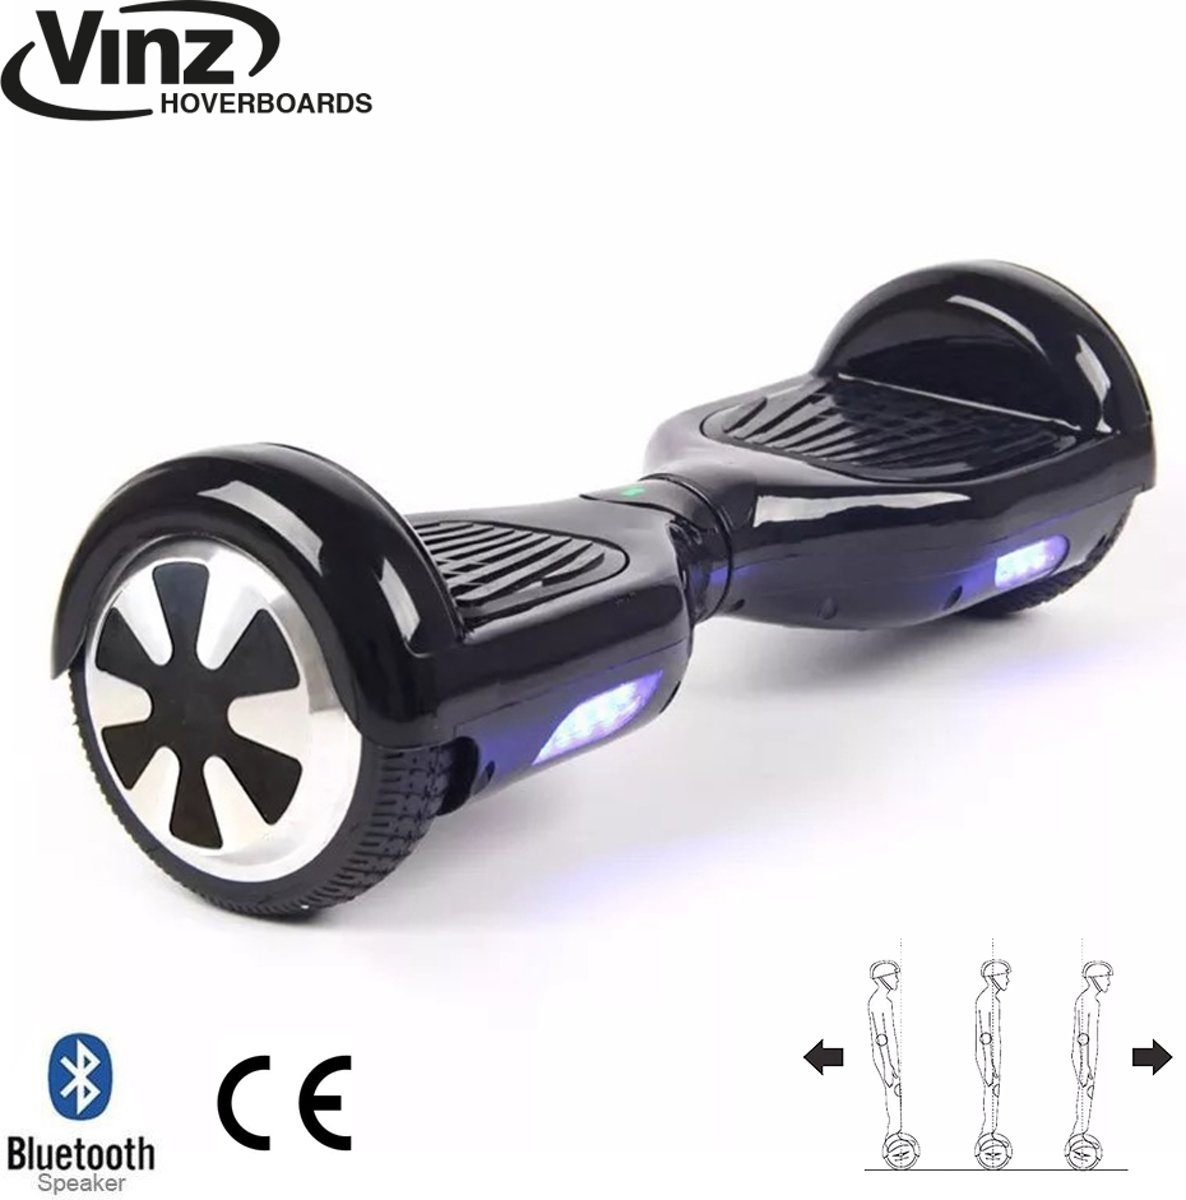 Vinz Hoverboard incl. Bluetooth Boxen & LED 6,5 Inch - Zwart